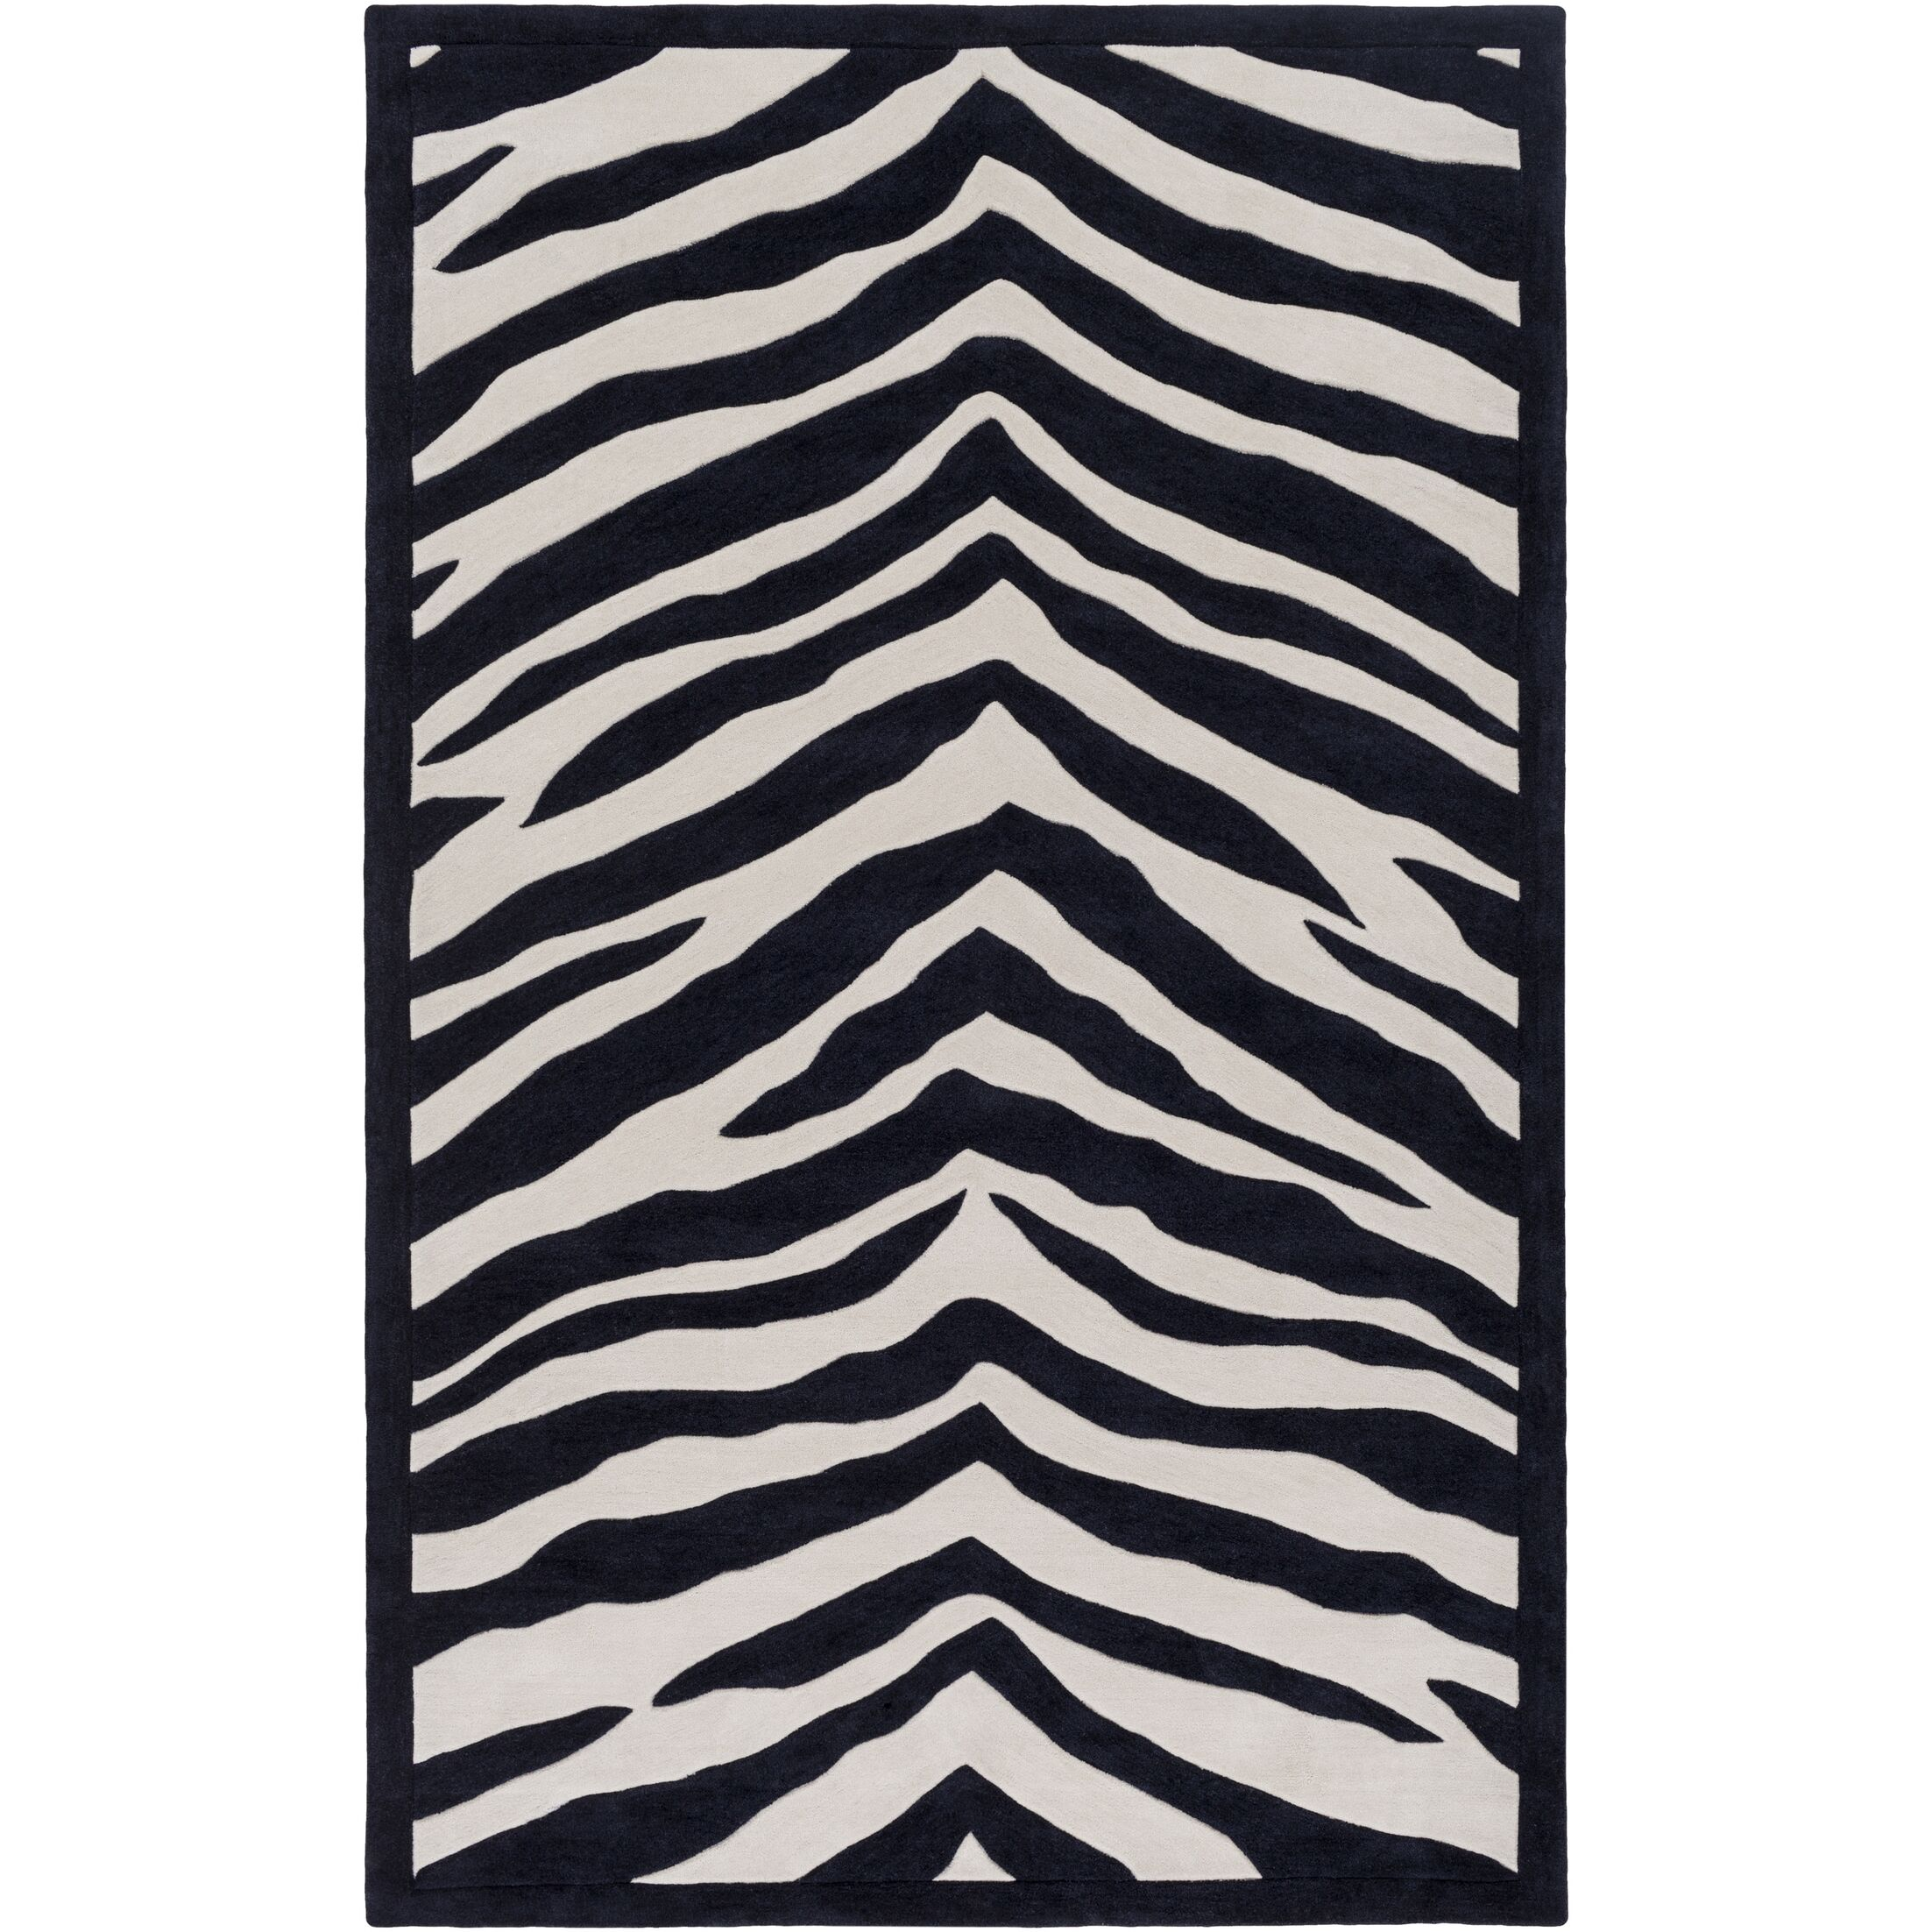 Alvin Hand-Tufted Black/Ivory Area Rug Rug Size: Rectangle 3' x 5'